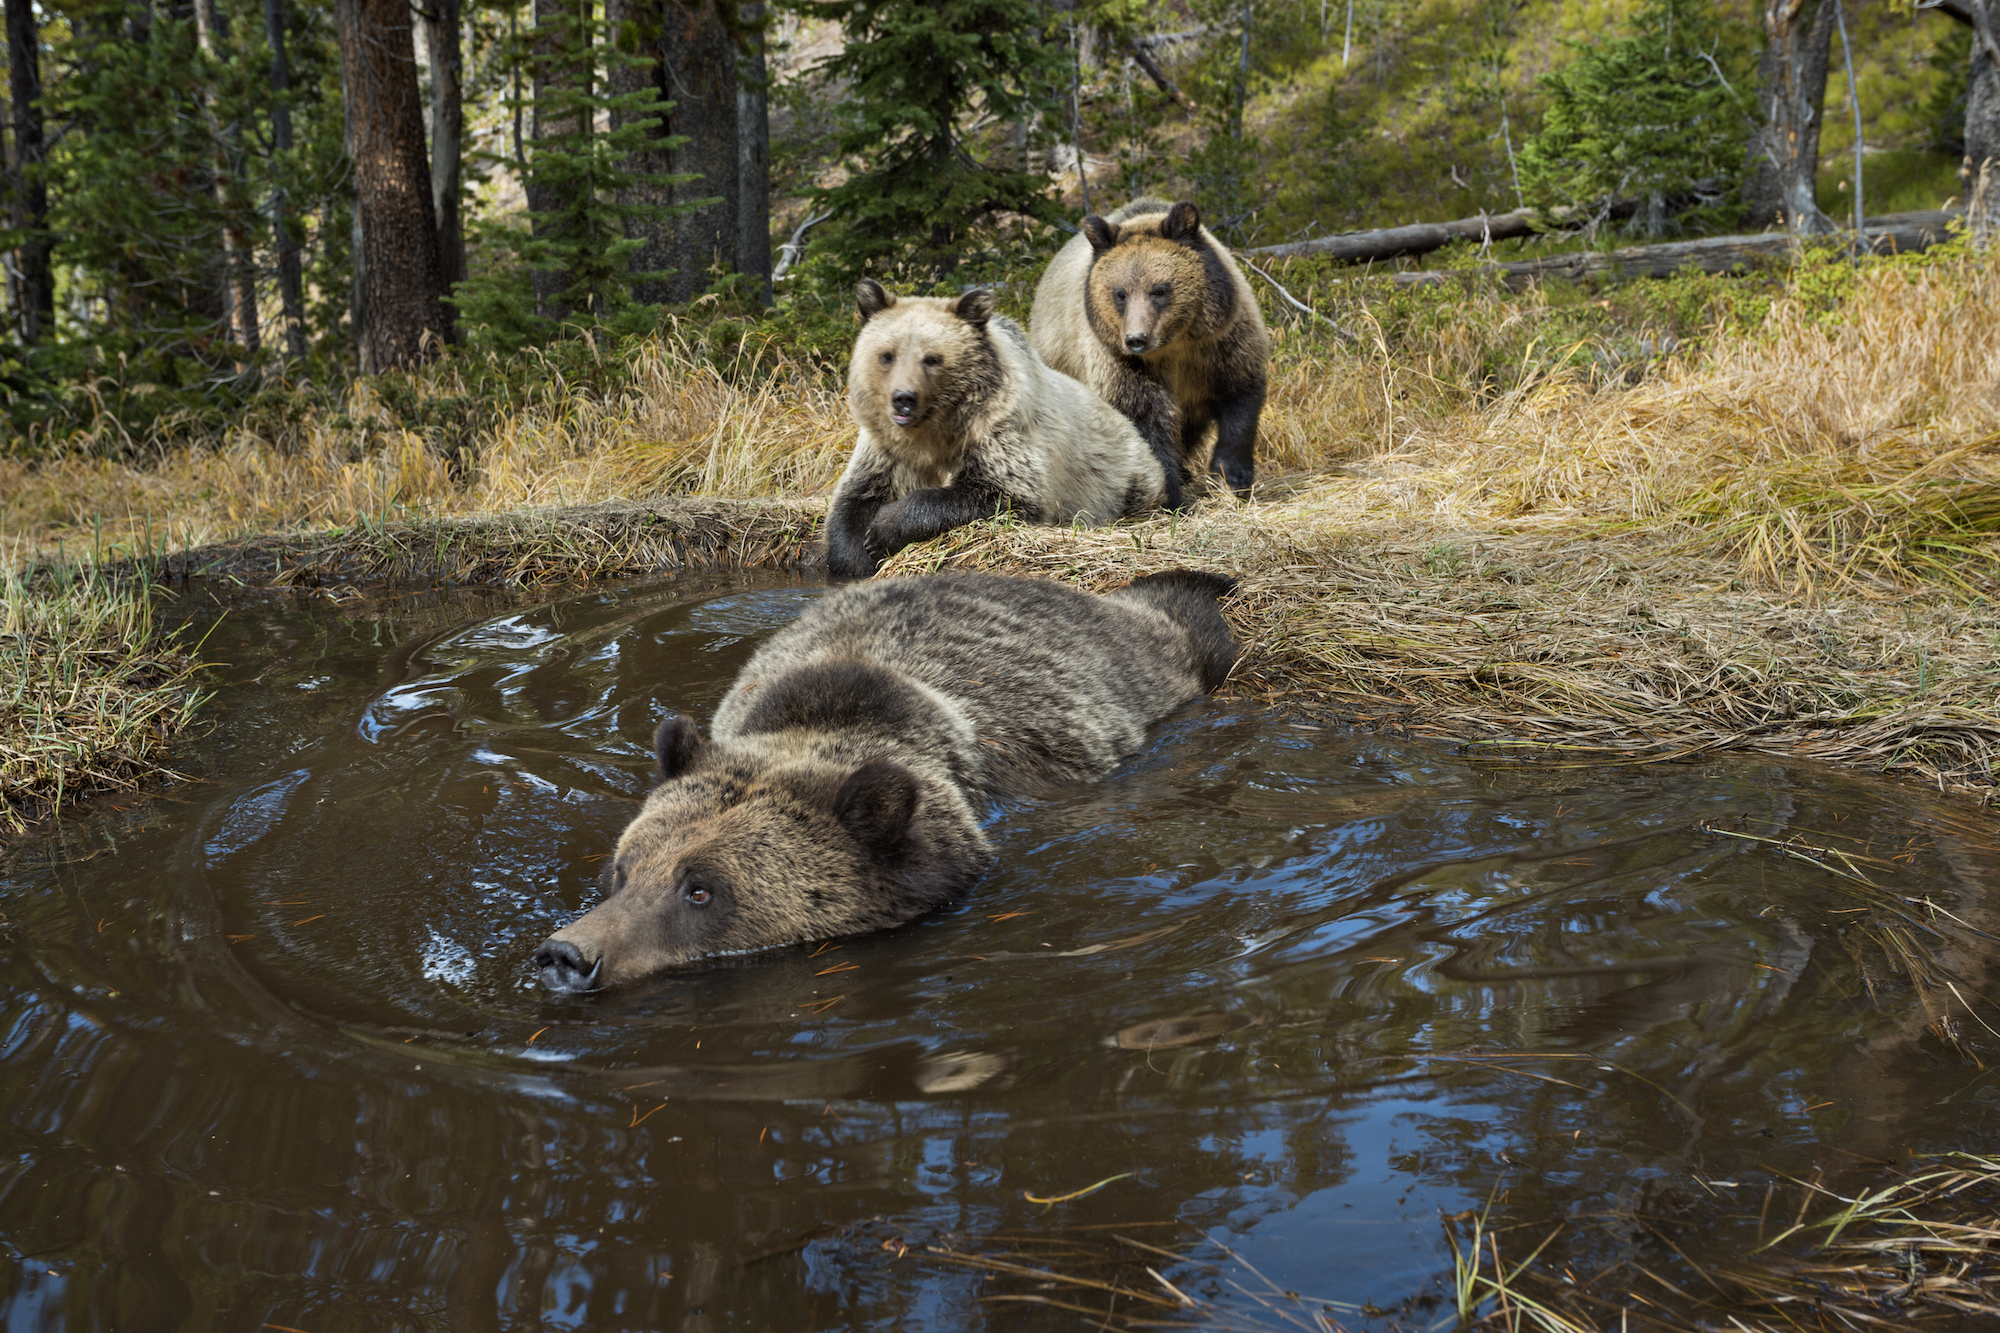 A camera trap captures grizzly bears bathing, splashing, and frolicking at a water hole.(MICHAEL NICHOLS/National Geographic Creative)